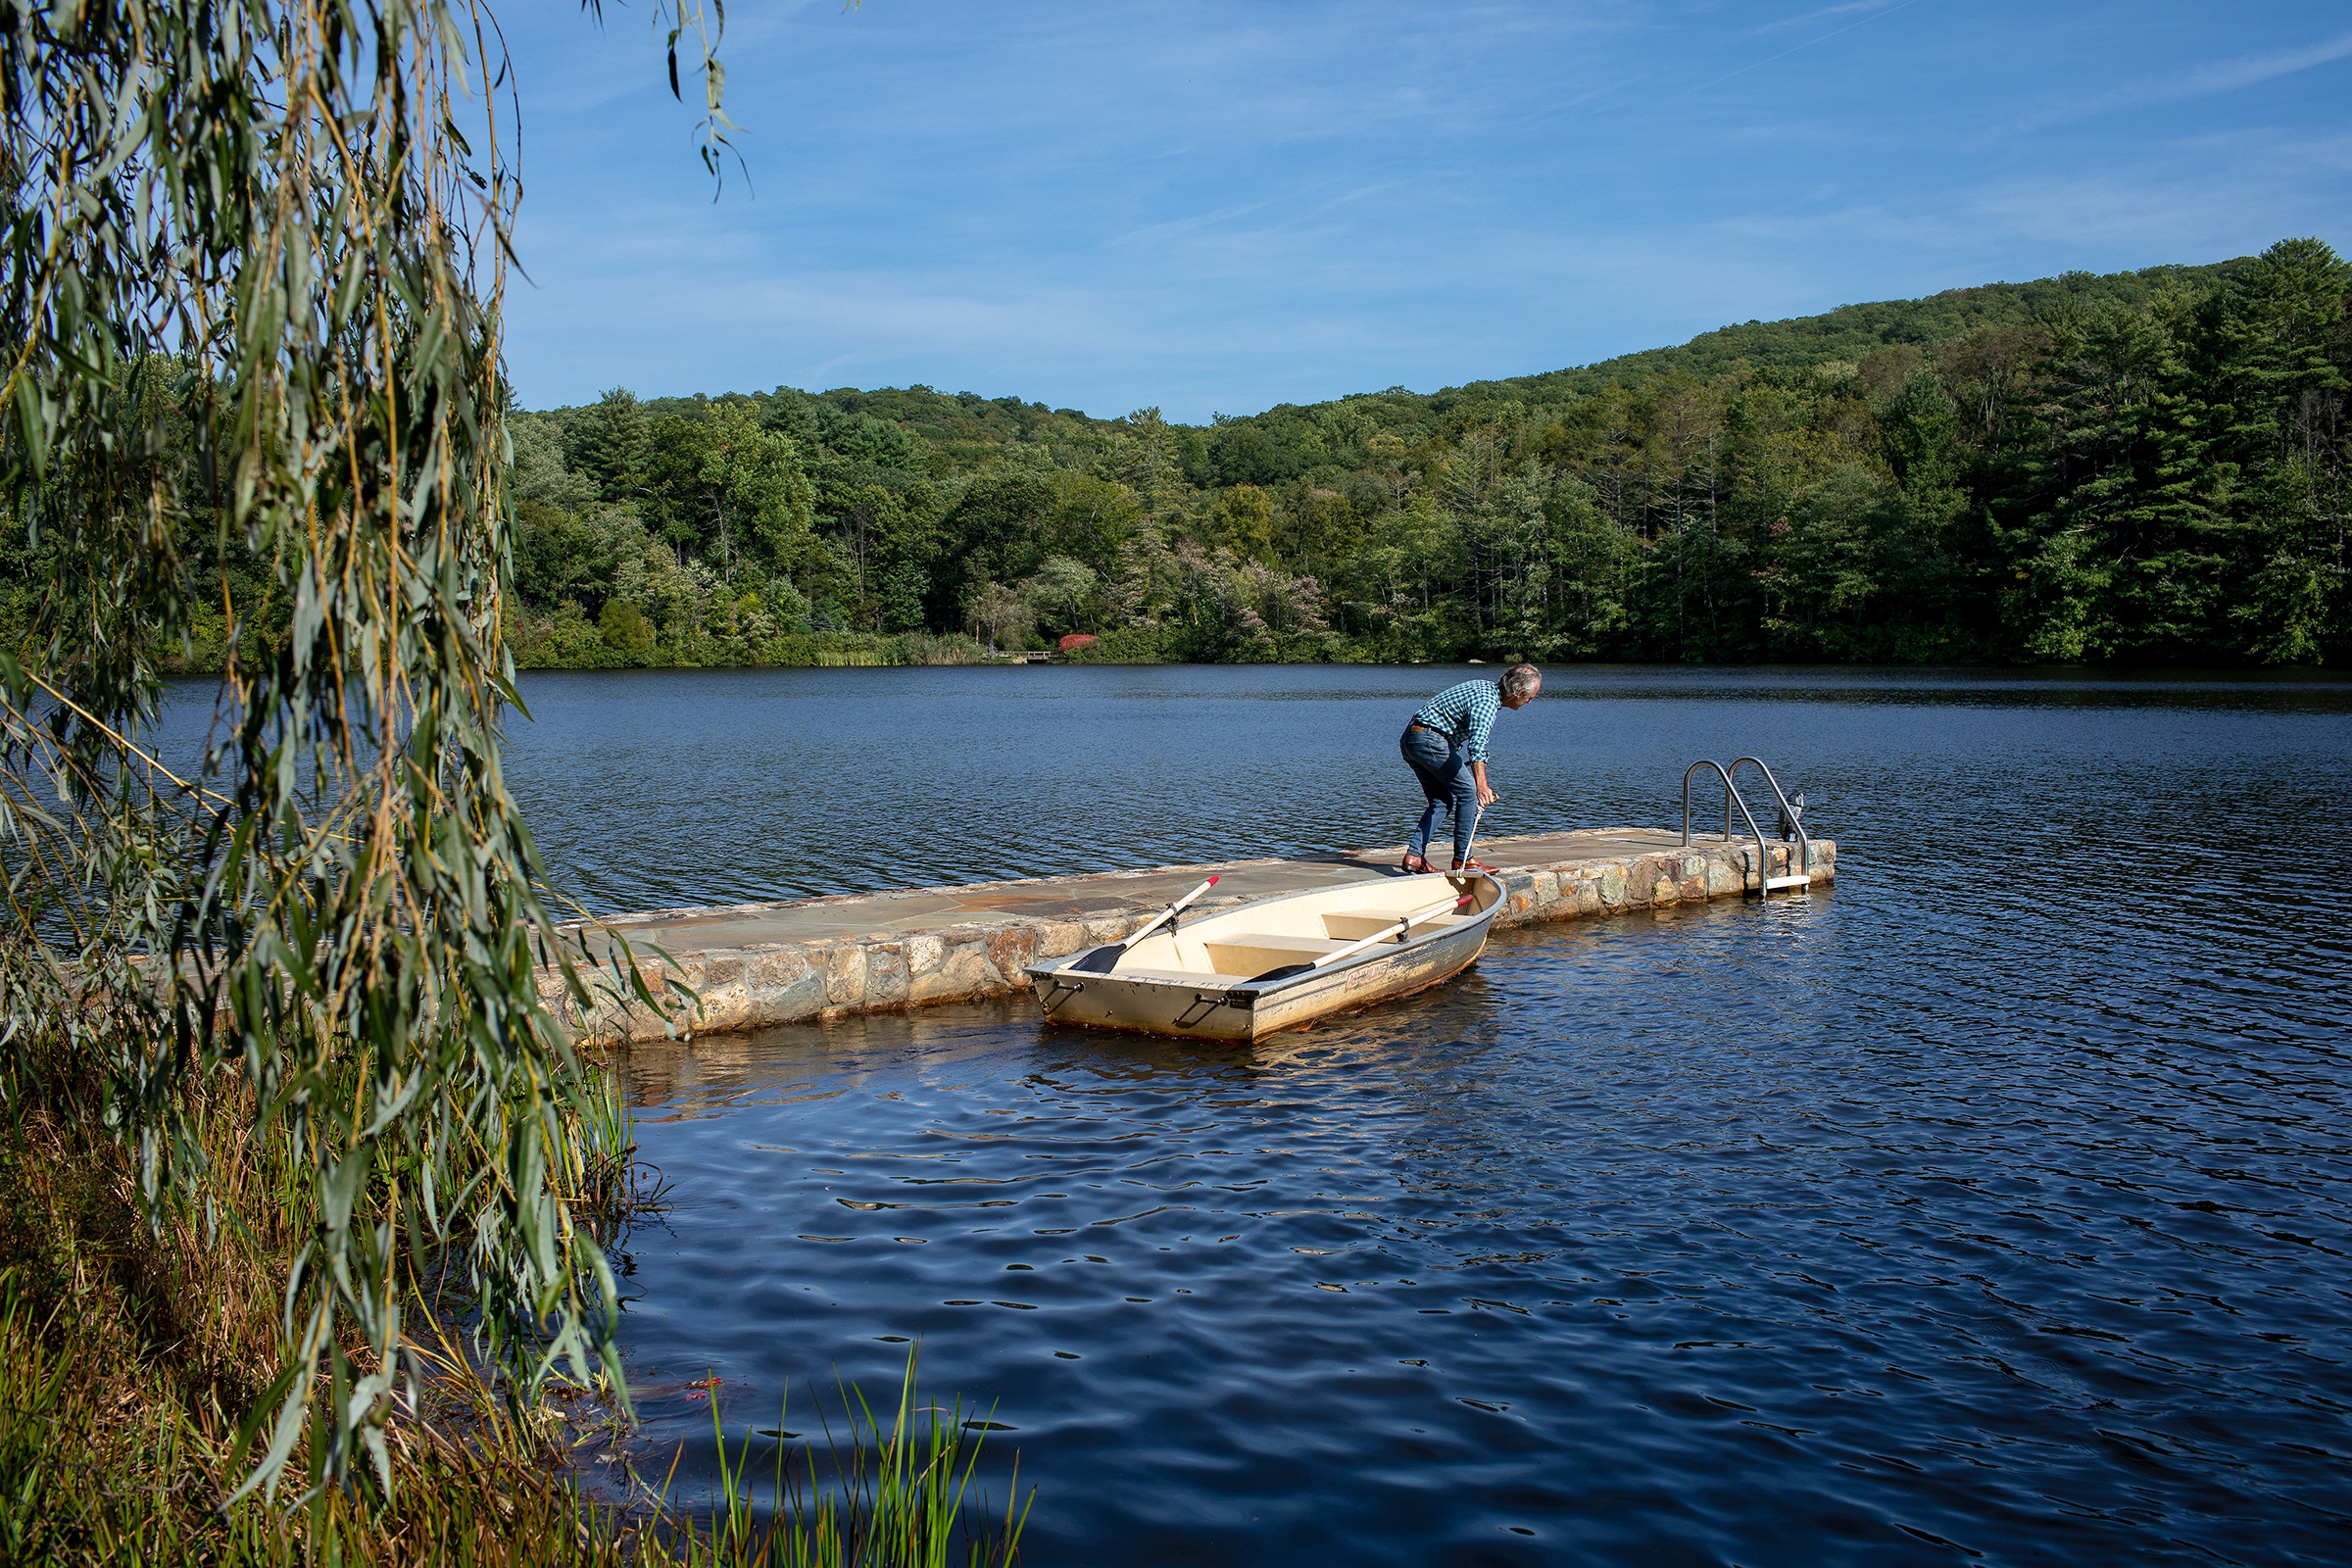 The author's home in Garrison, N.Y., once a gentleman's hunting lodge, came with the lake.